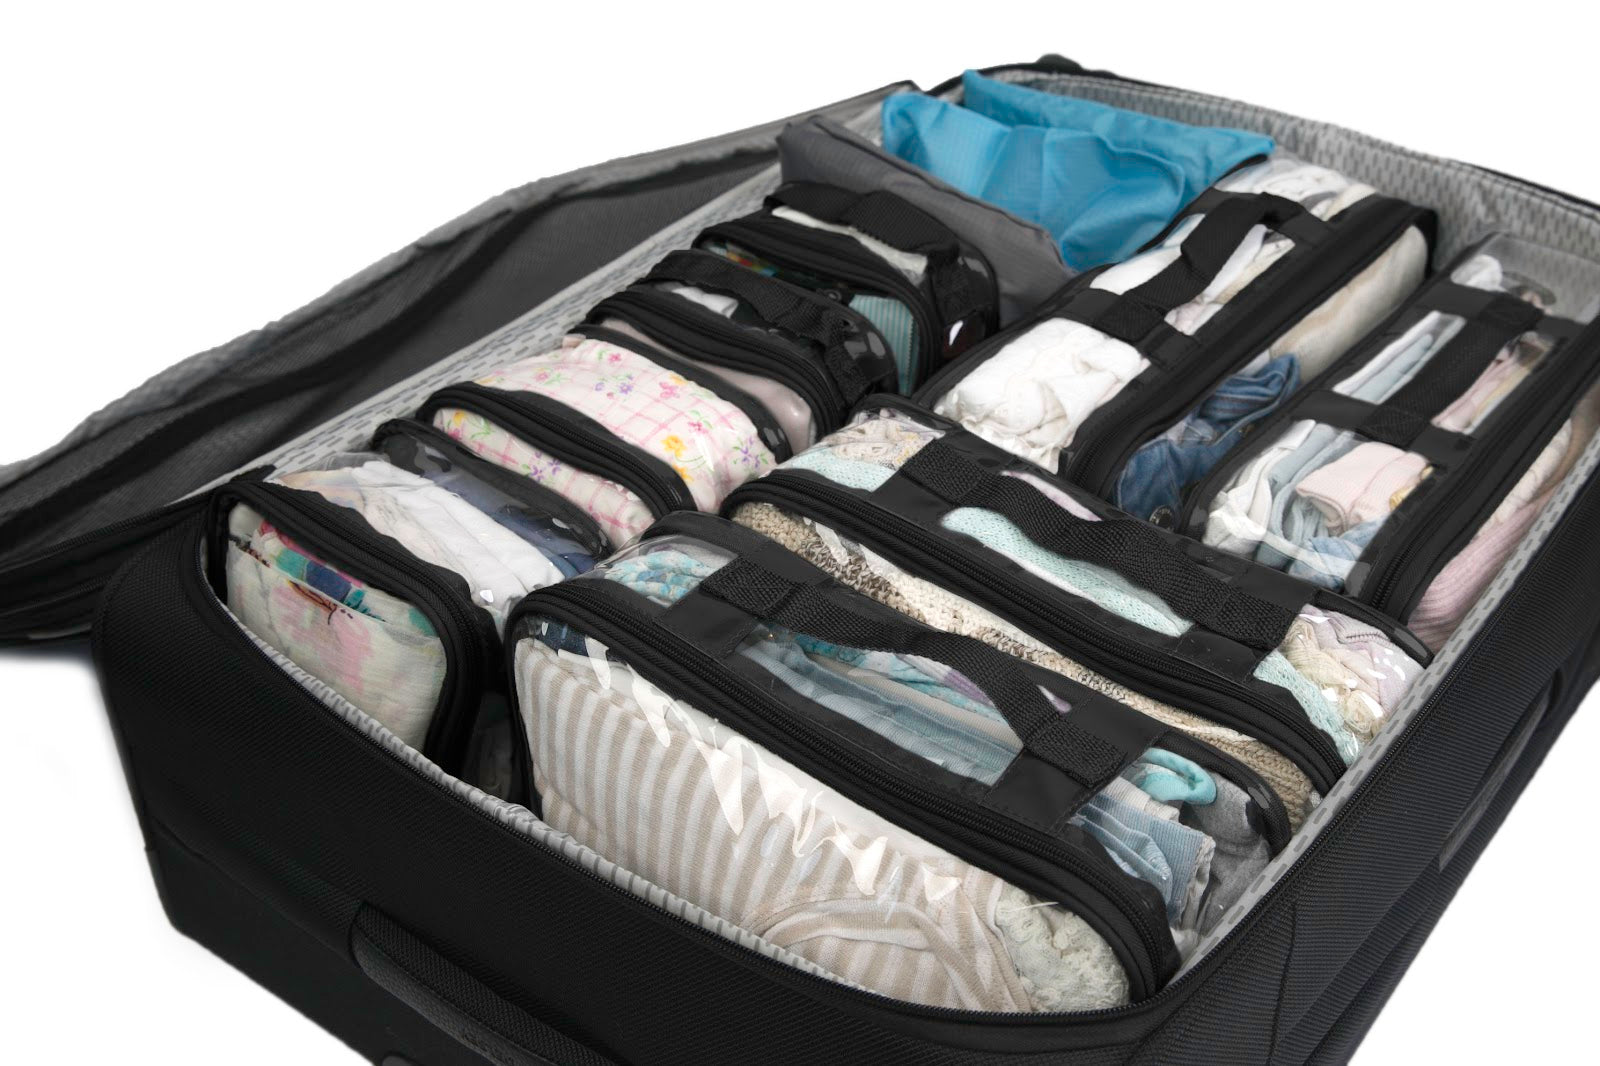 Clear Packing Cells save space and organize your suitcase